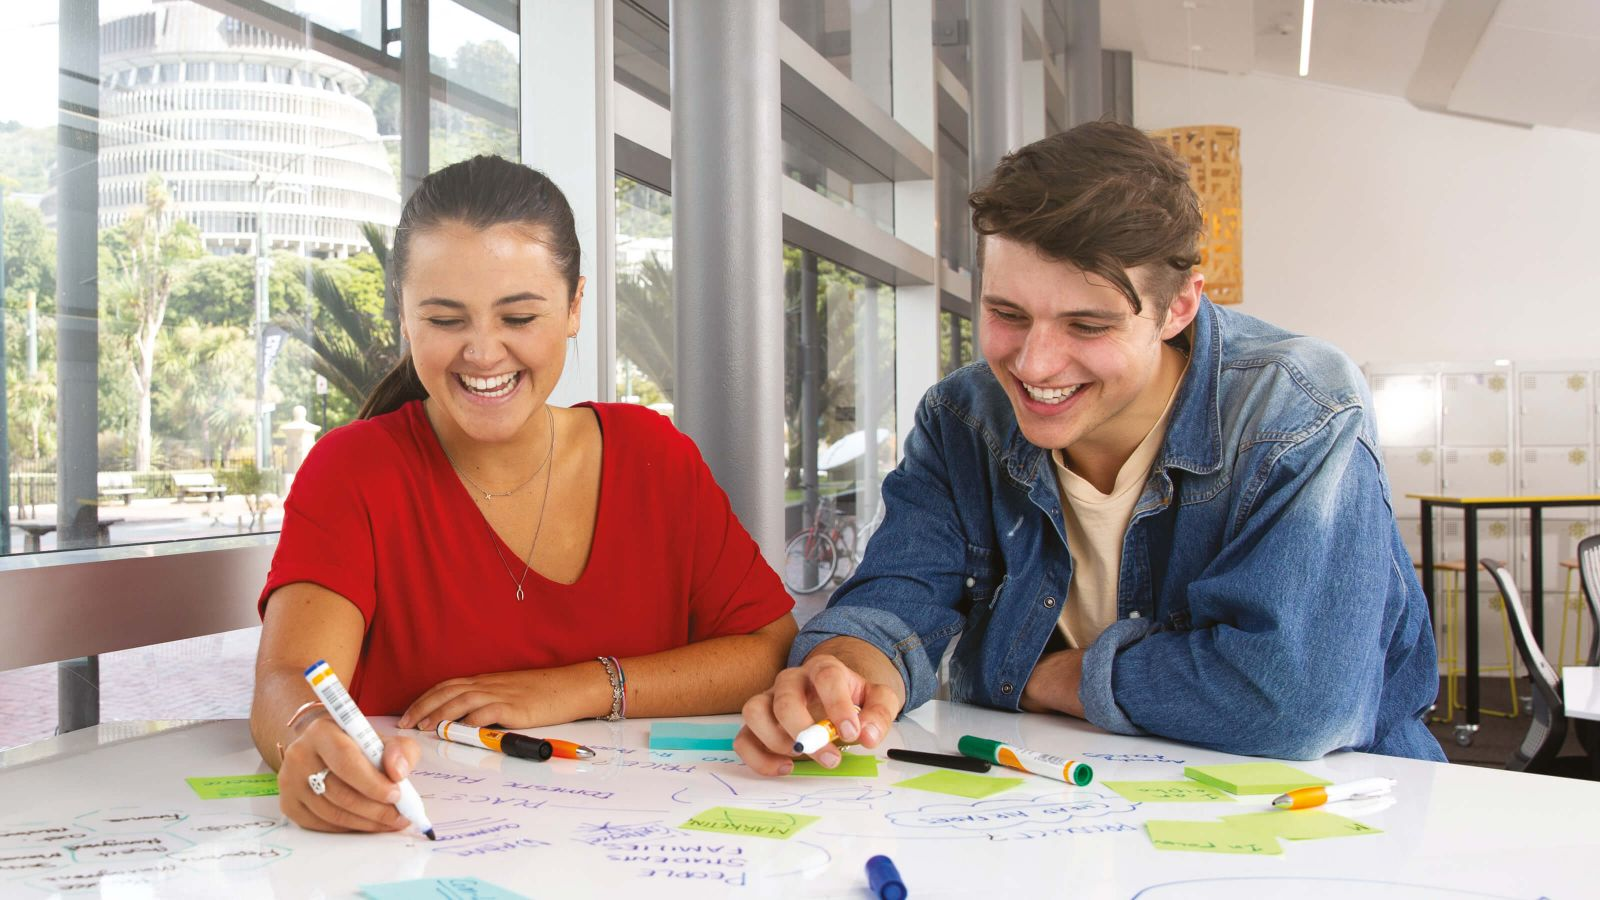 Two students sitting together and writing on a white board in a seminar room at the university's Pipitea campus.